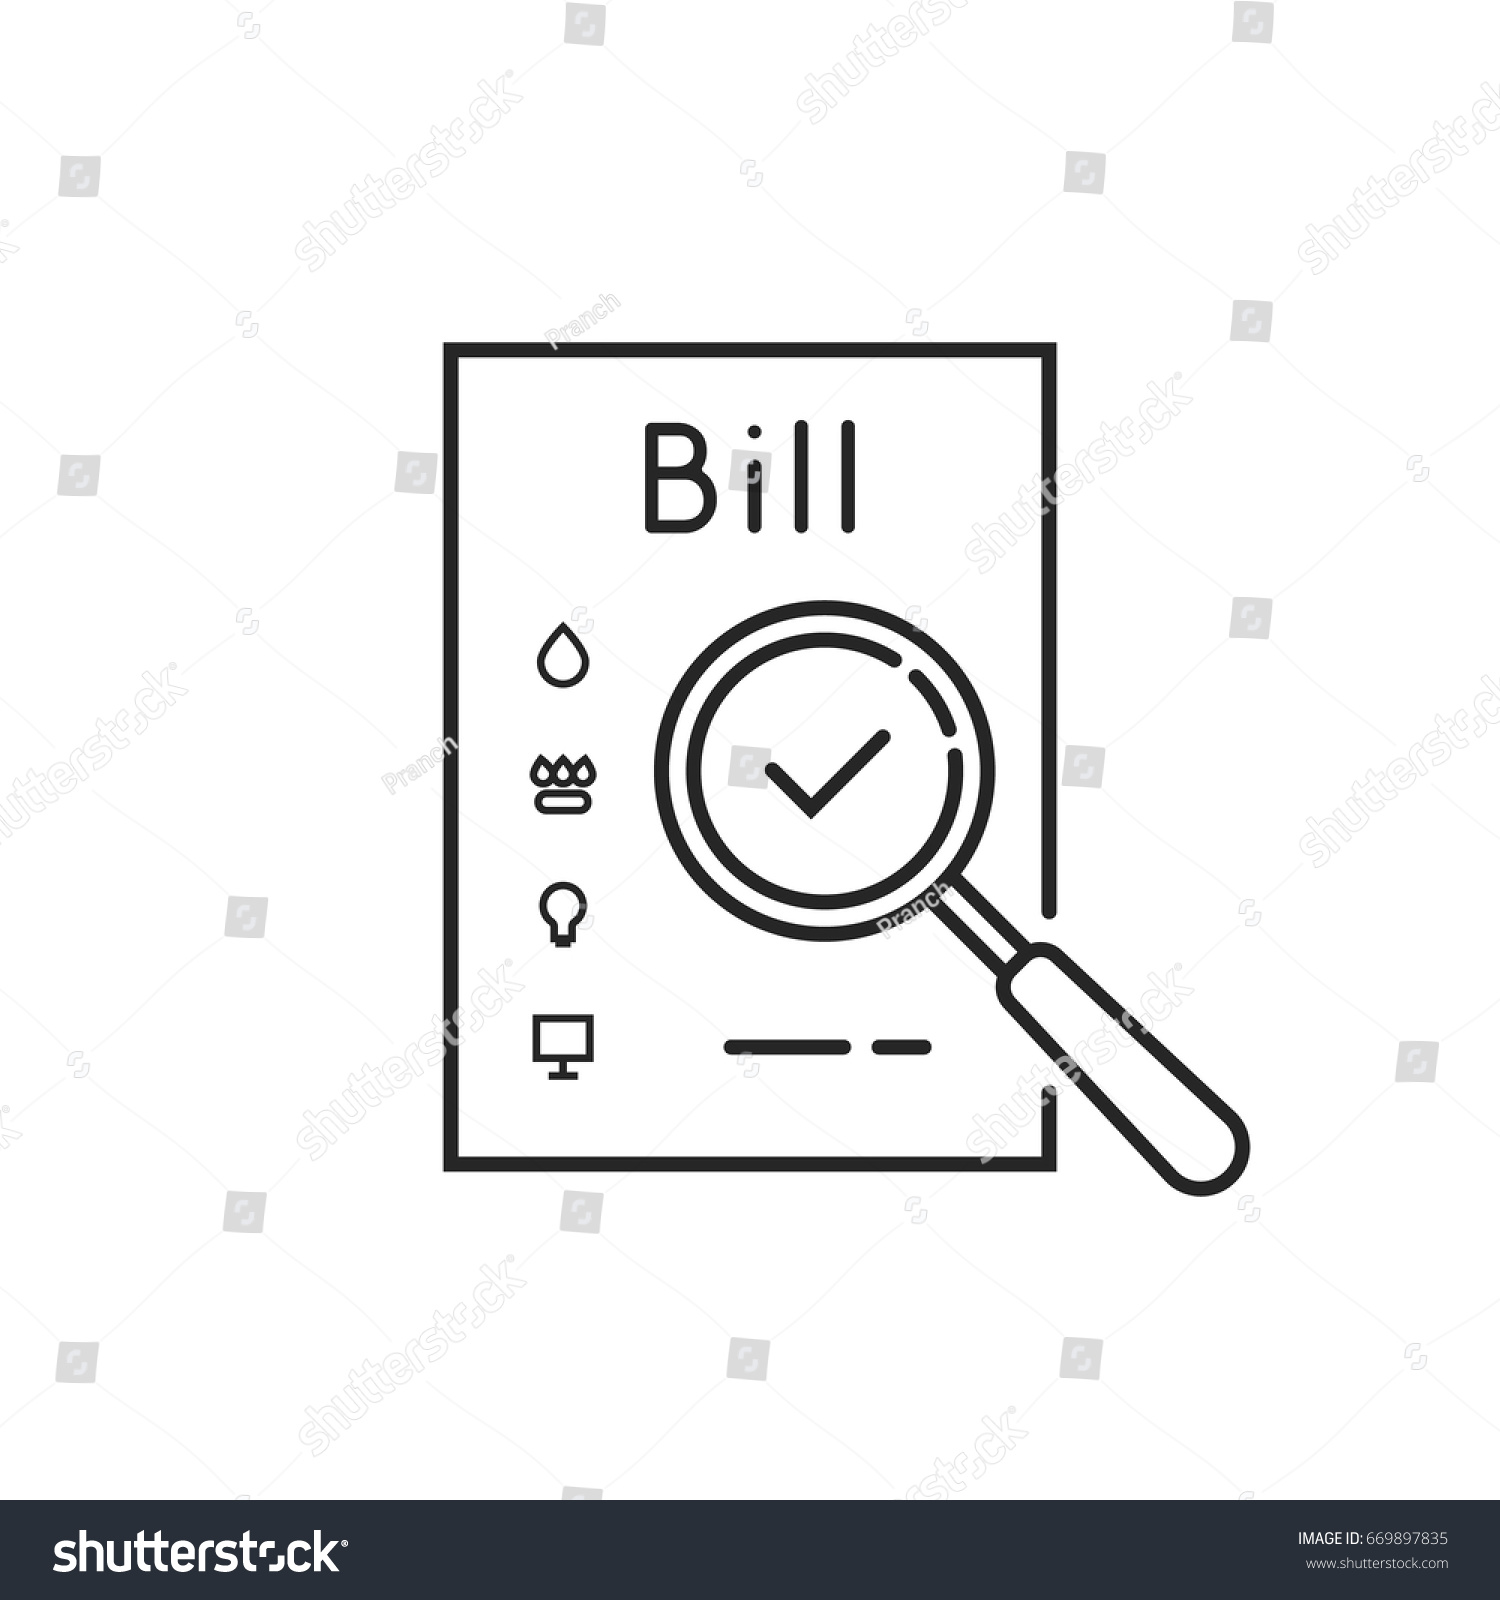 Thin Line Payment Utility Bills Icon Stock Vector (Royalty